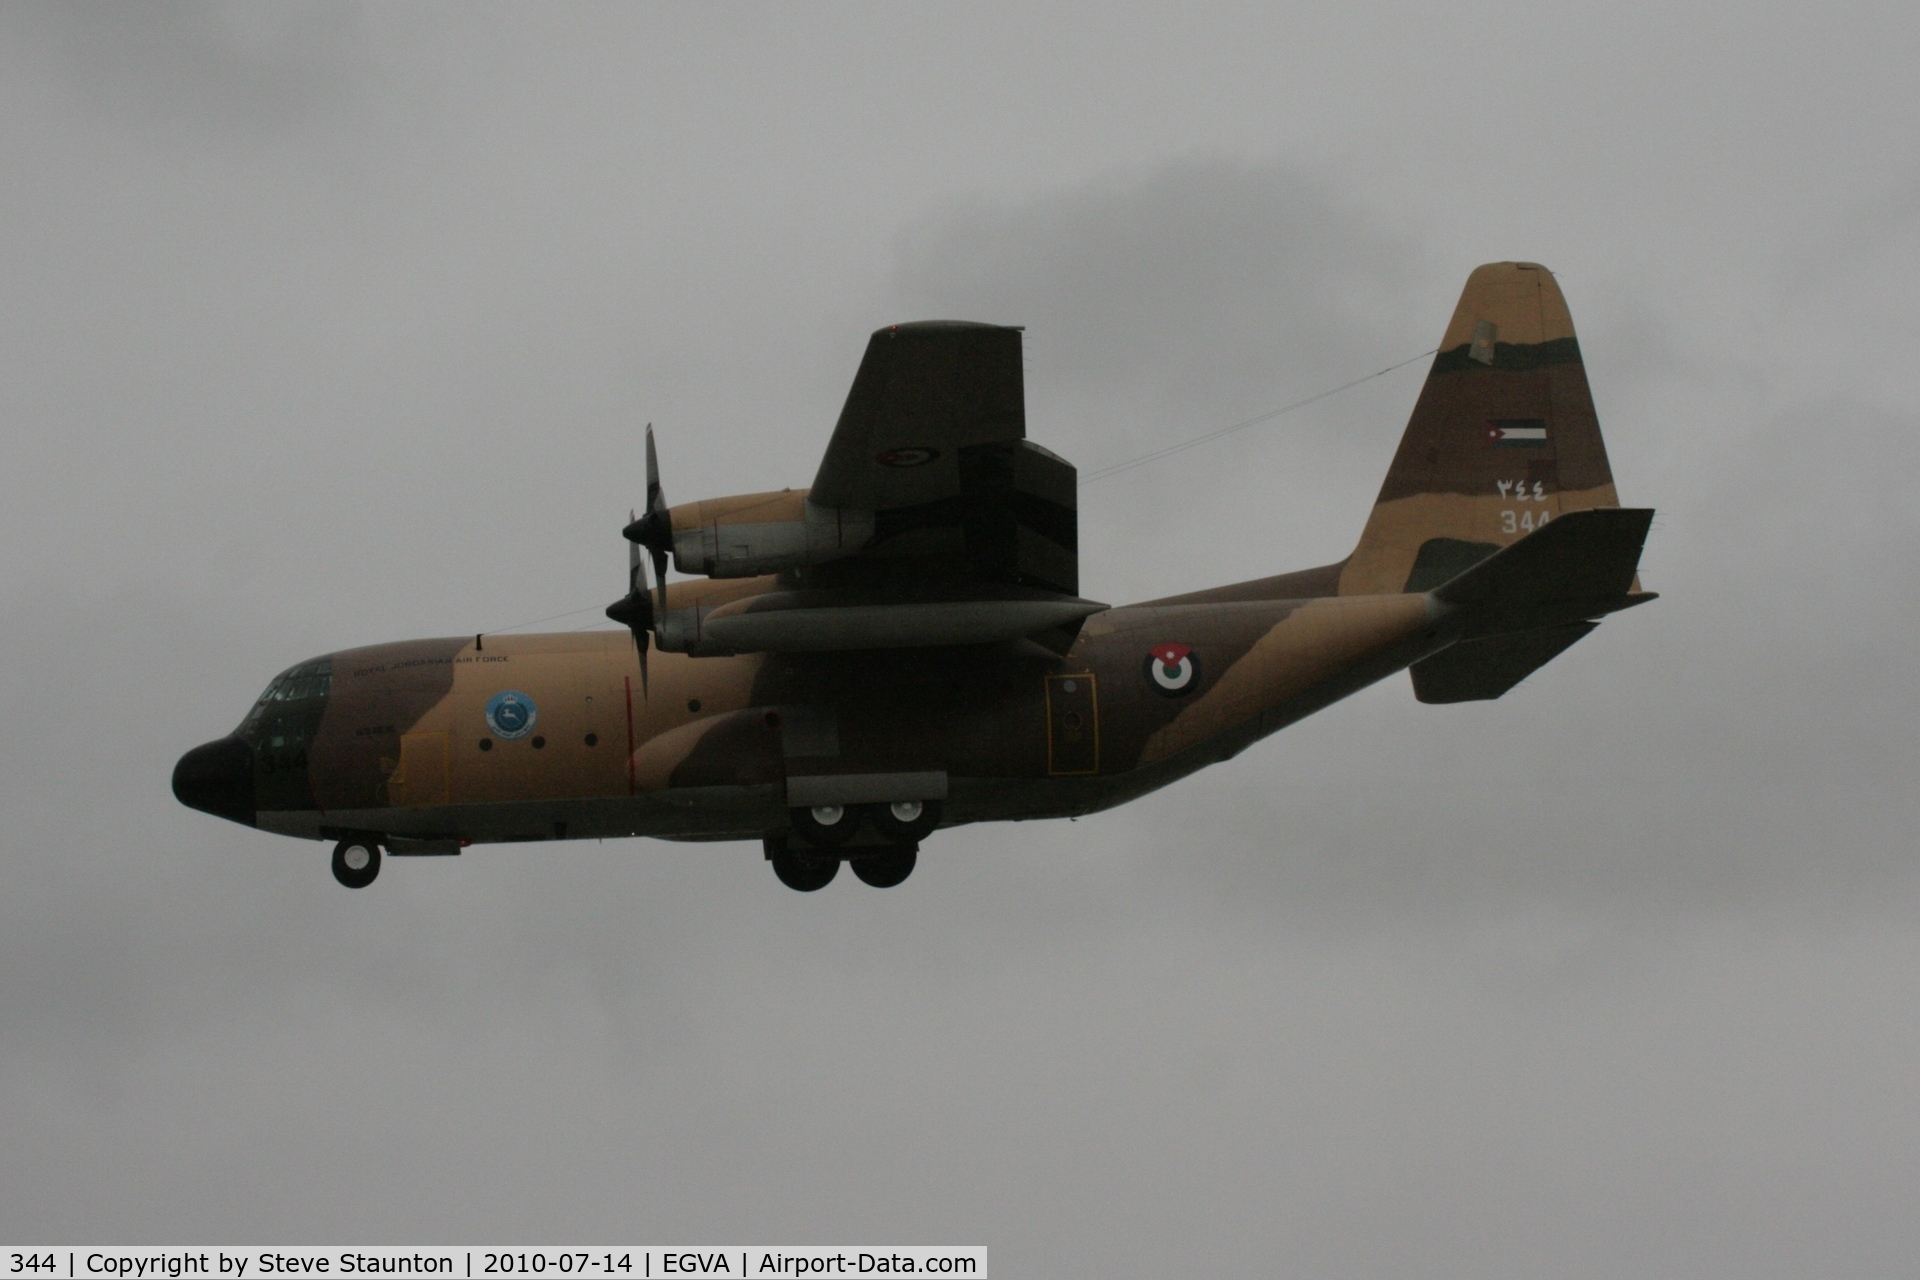 344, 1978 Lockheed C-130H Hercules C/N 382-4779, Taken at the Royal International Air Tattoo 2010